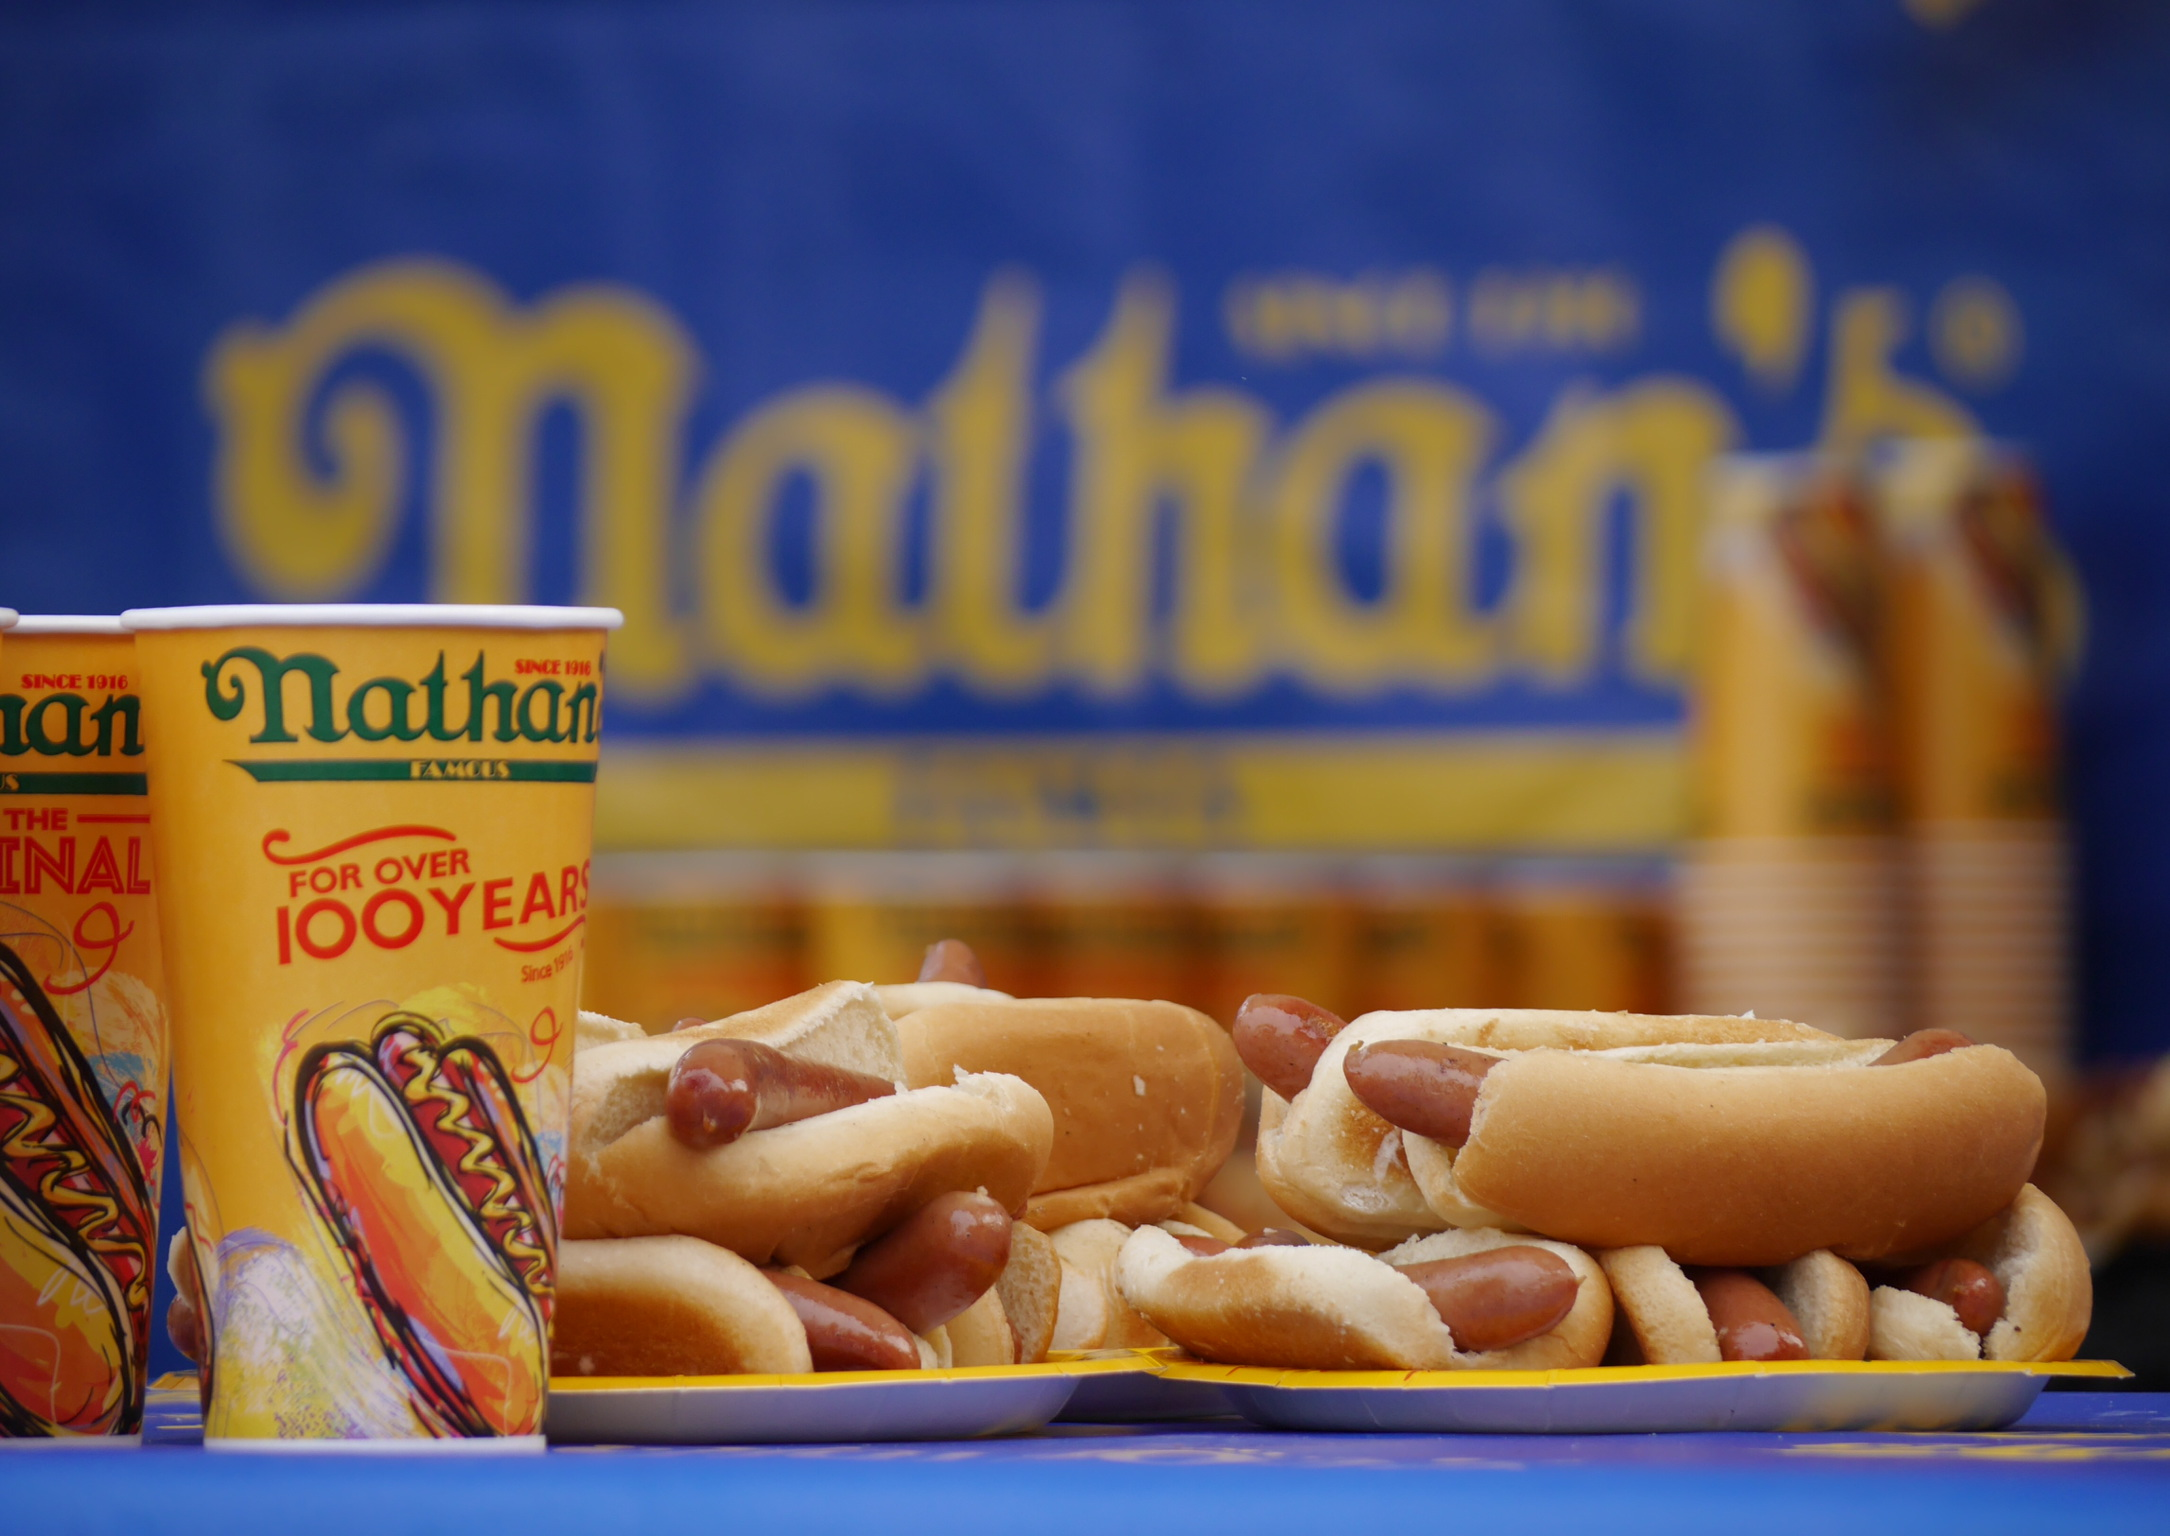 Nathan Hot Dog Contest Winners